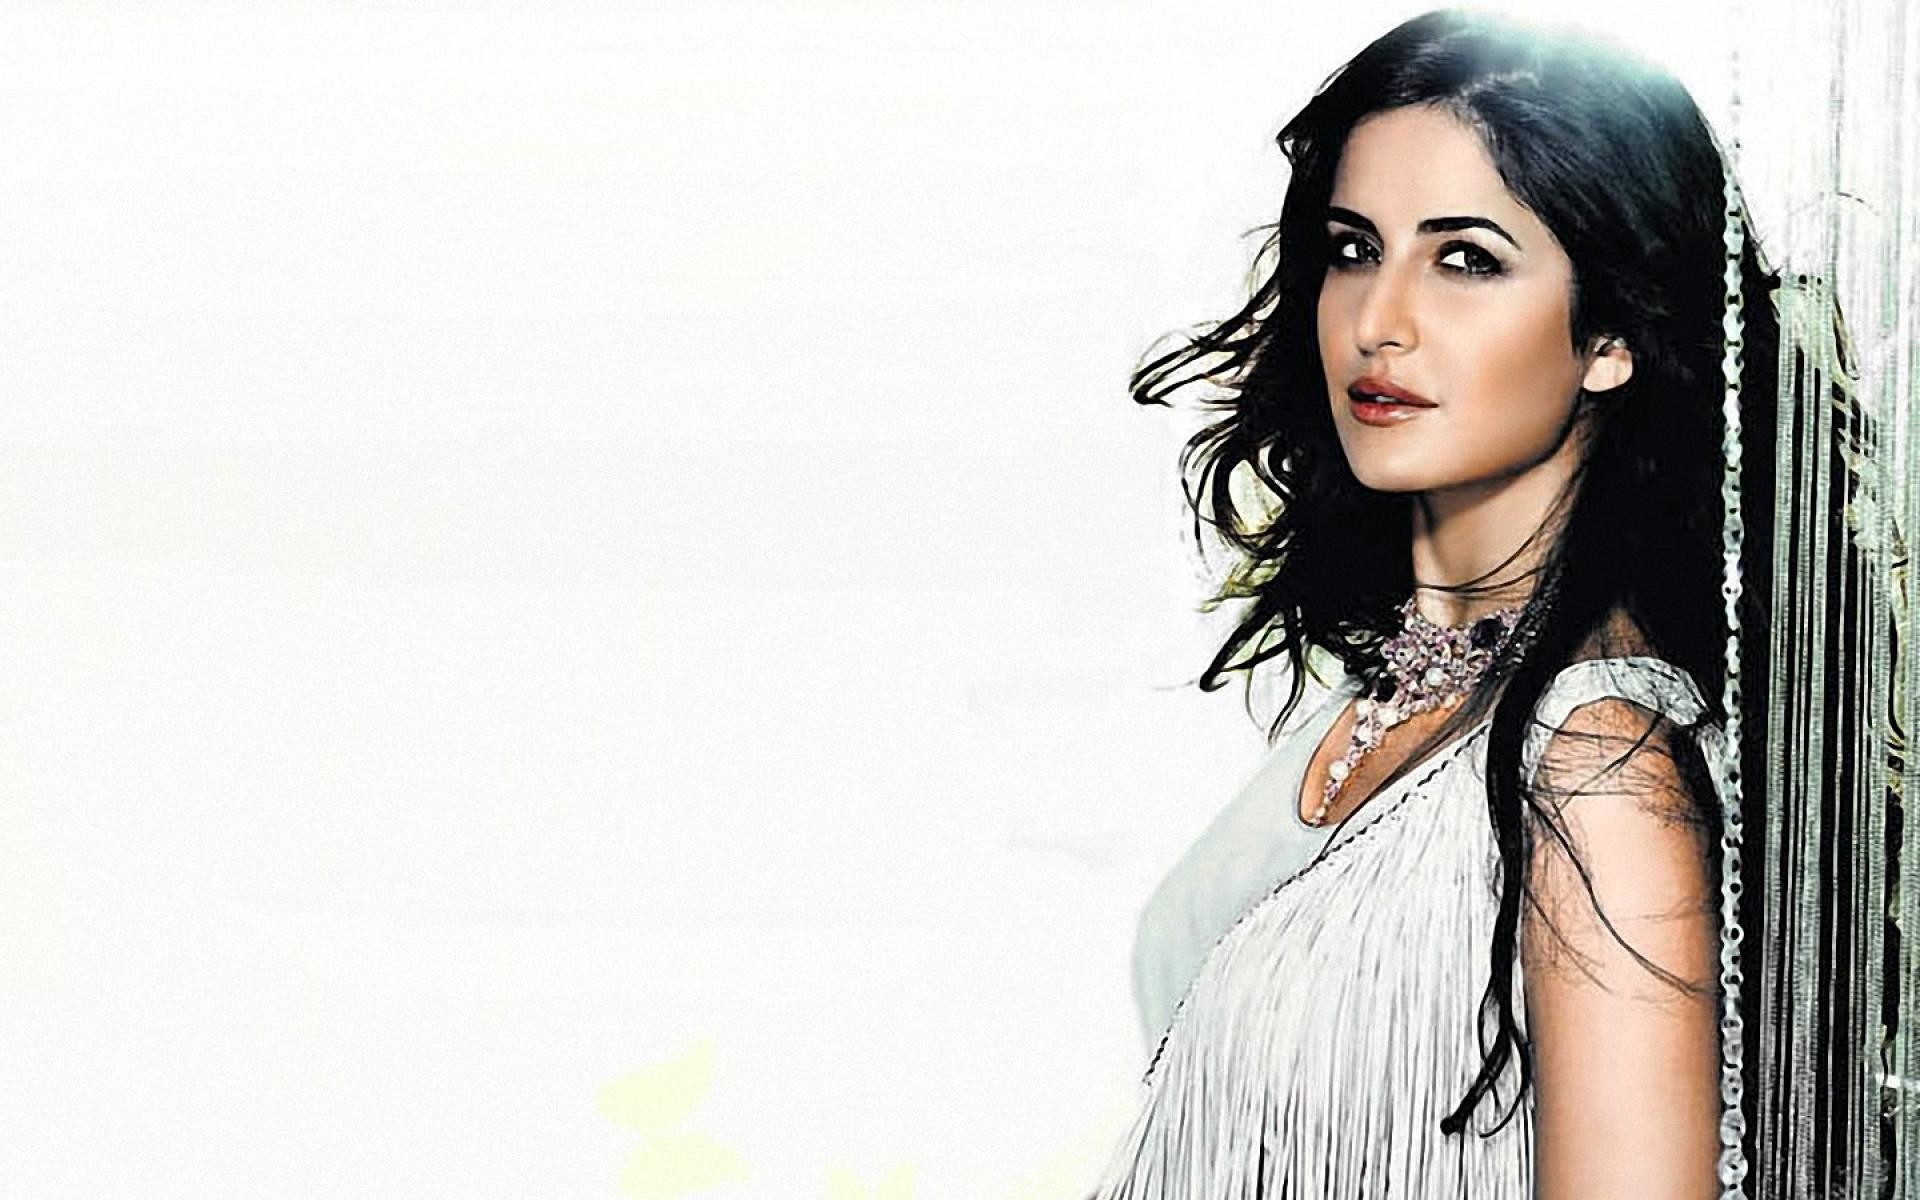 katrina kaif wallpapers hd (72+ images)